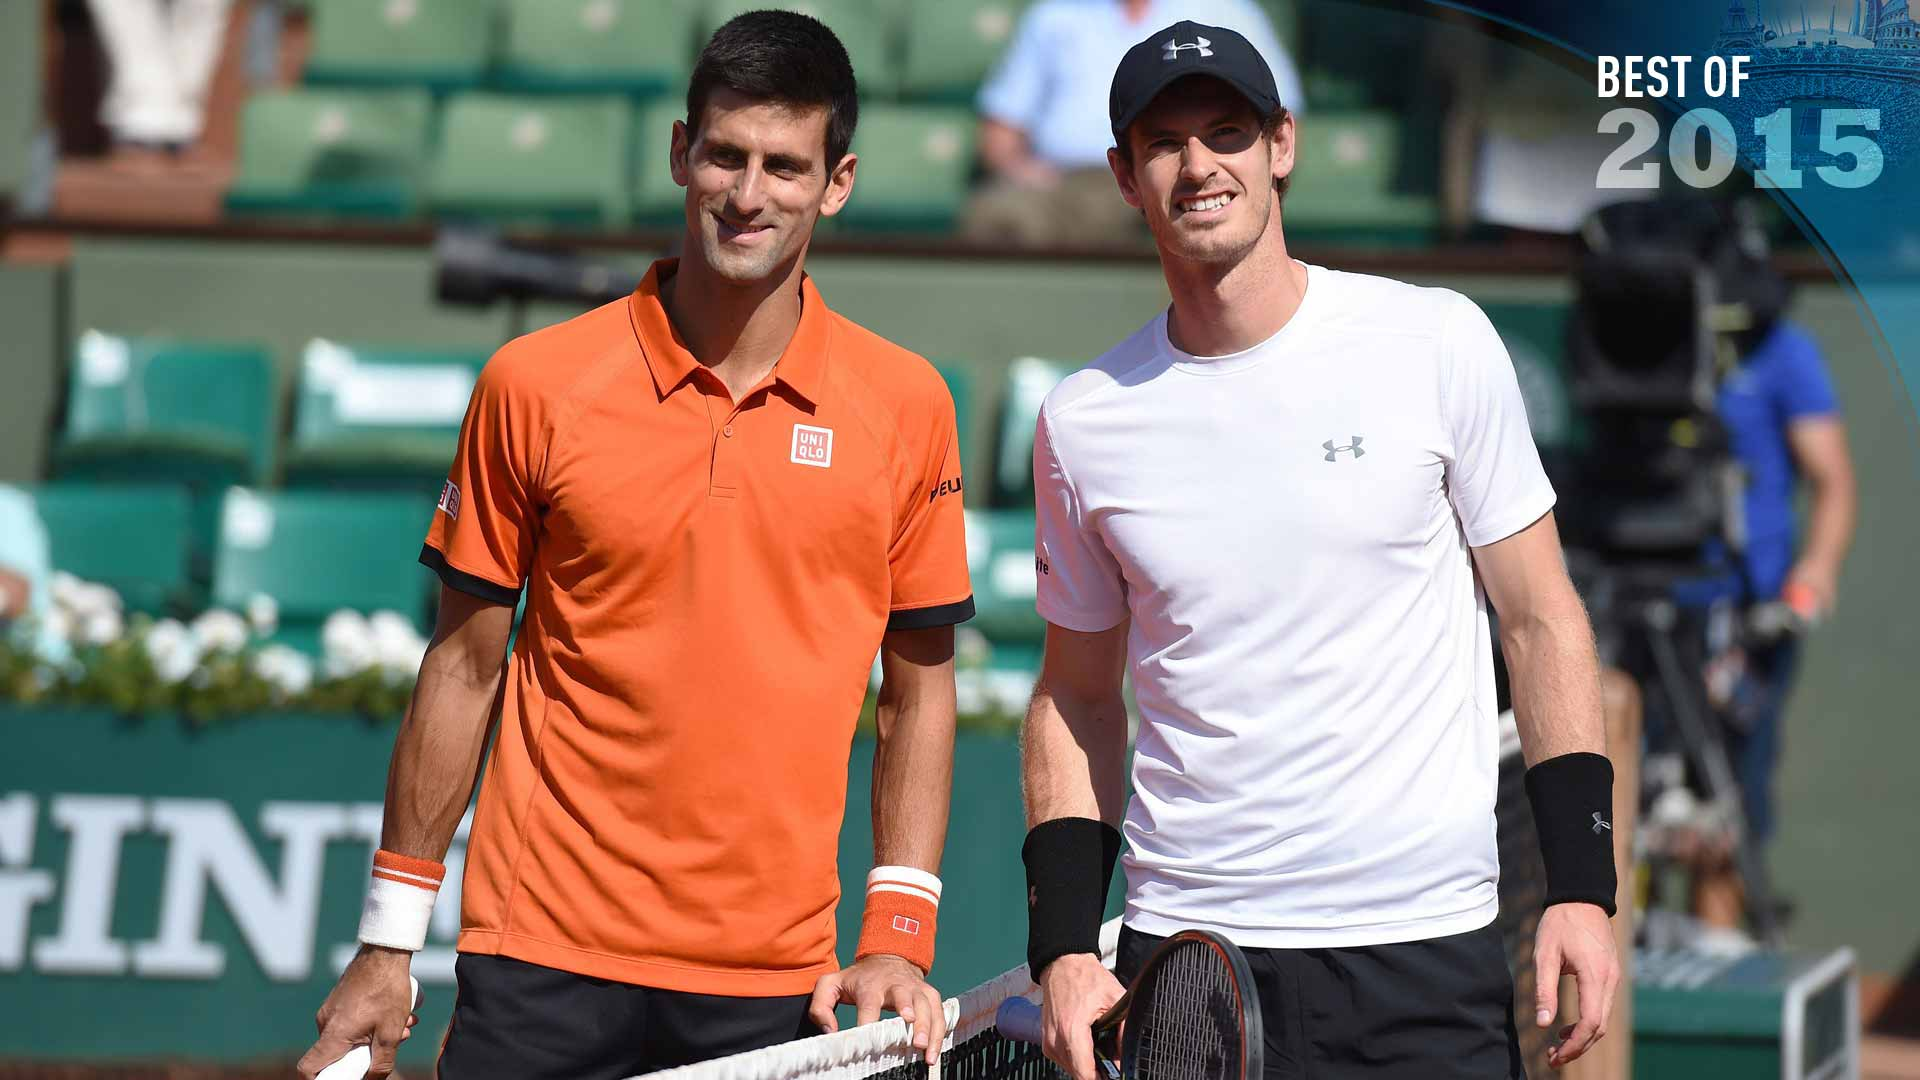 Rivalries Of 2015 Djokovic Vs Murray Atp Tour Tennis